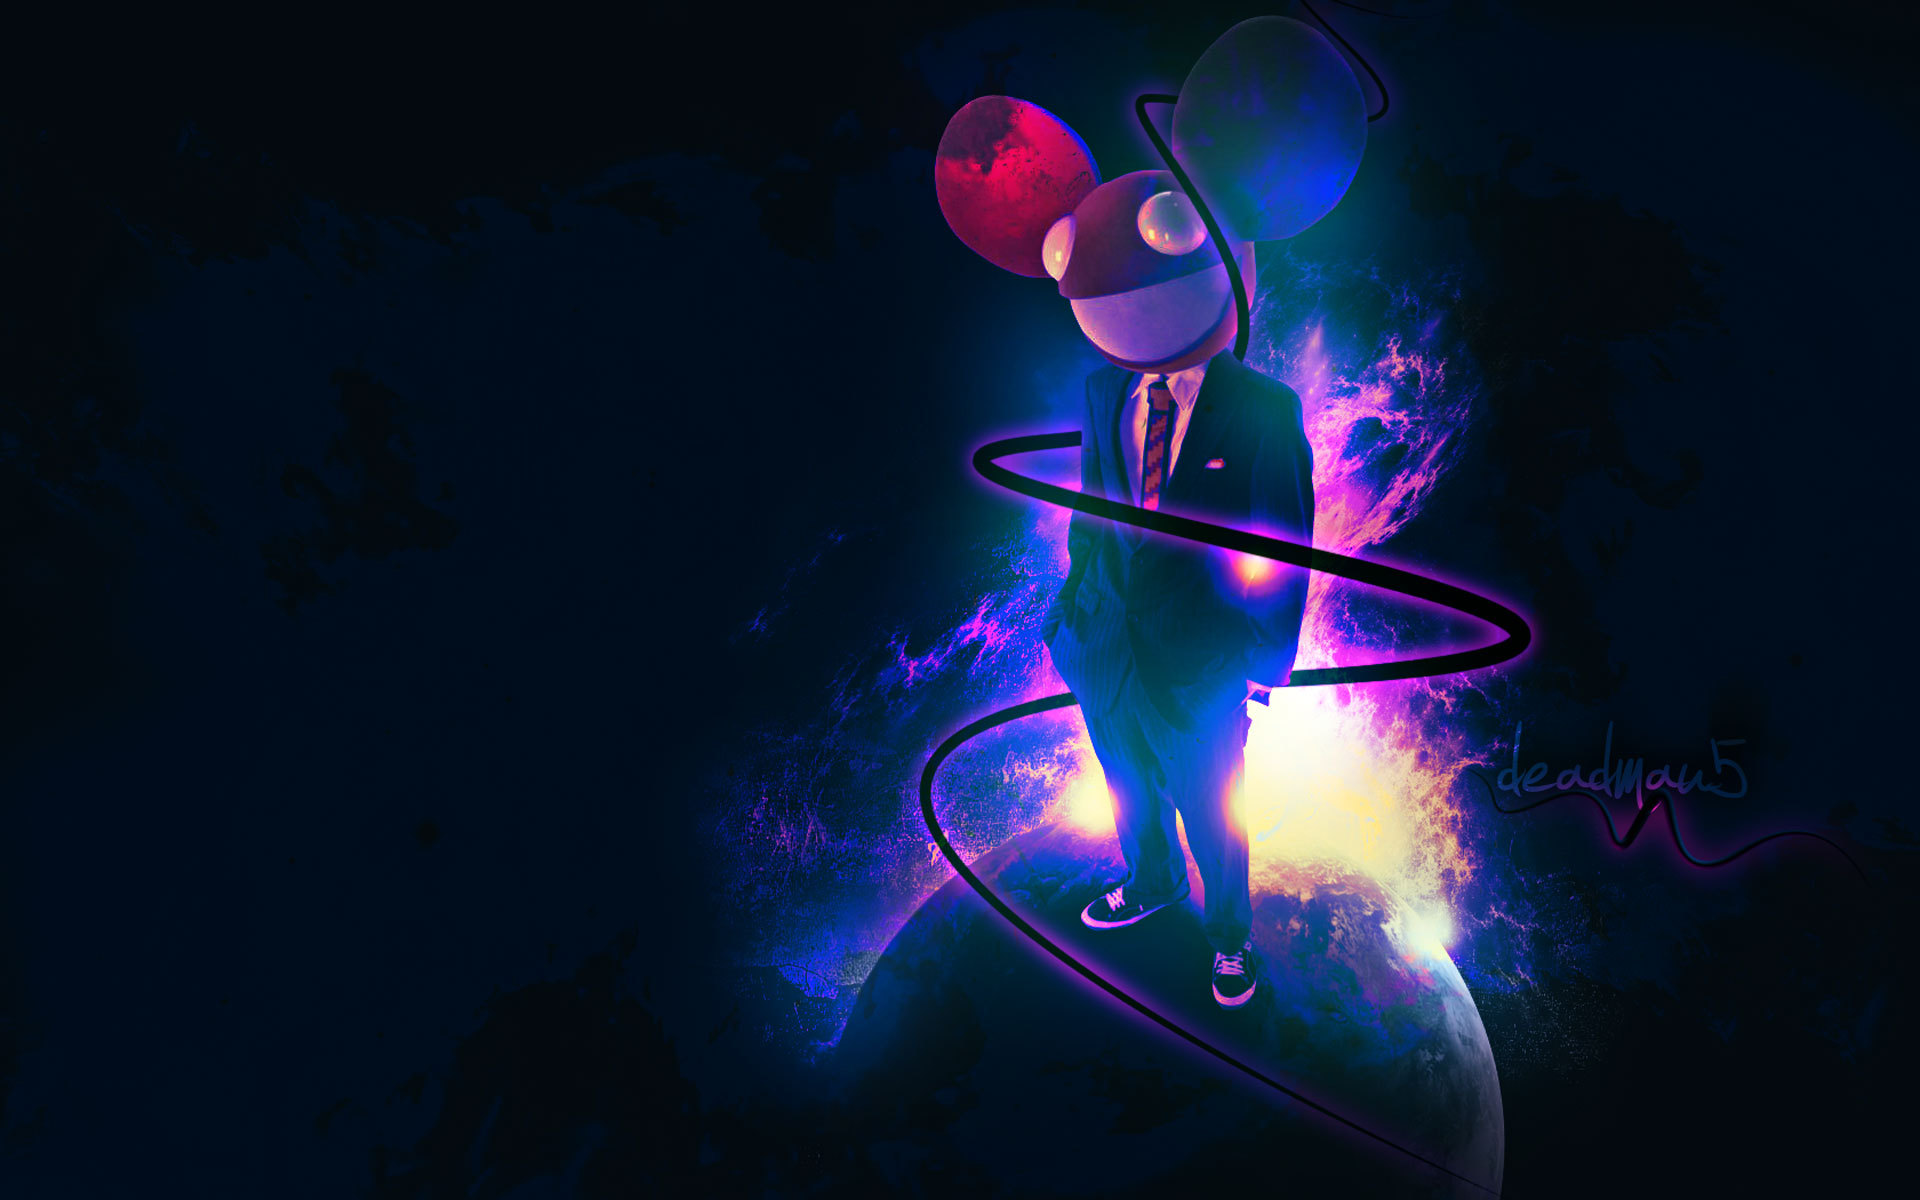 Pictures Of Deadmau5